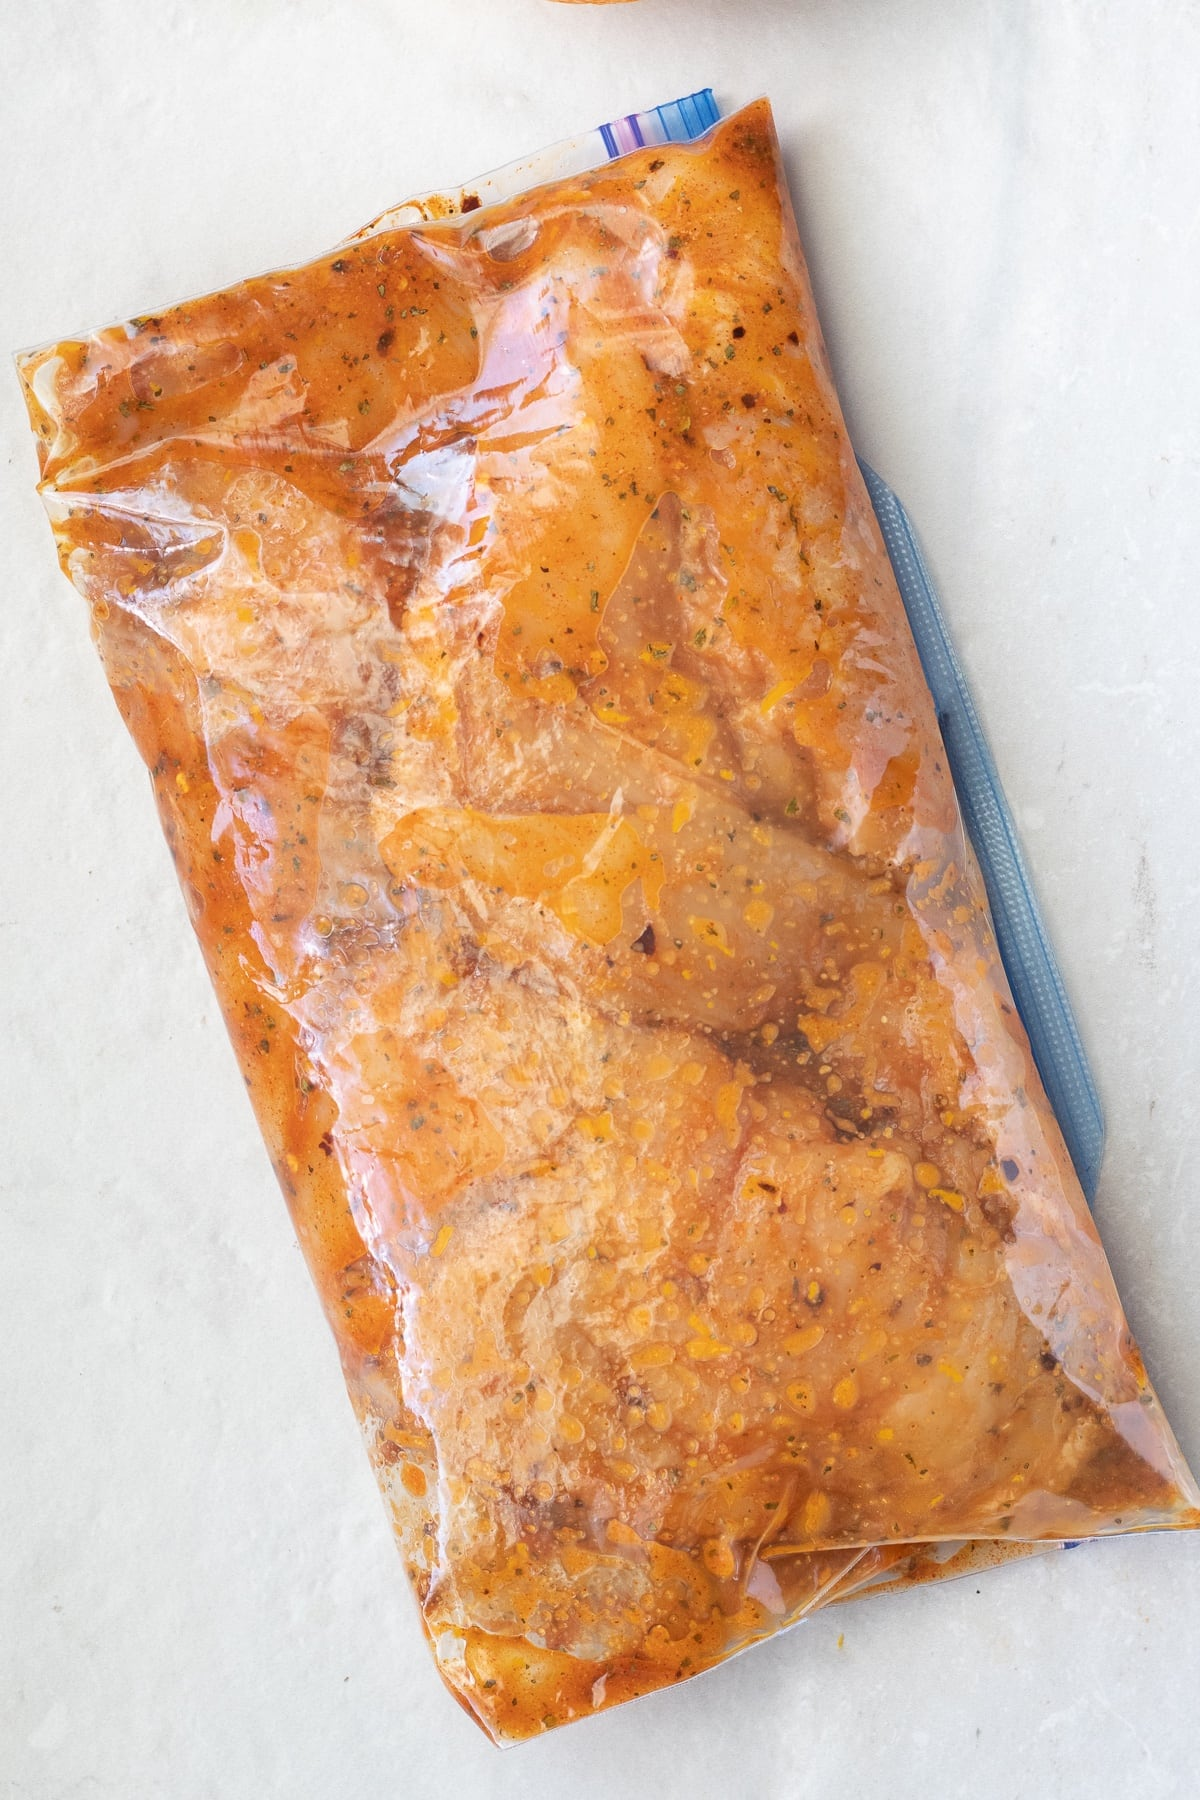 Put the chicken breast in a large zipper bag to marinate.